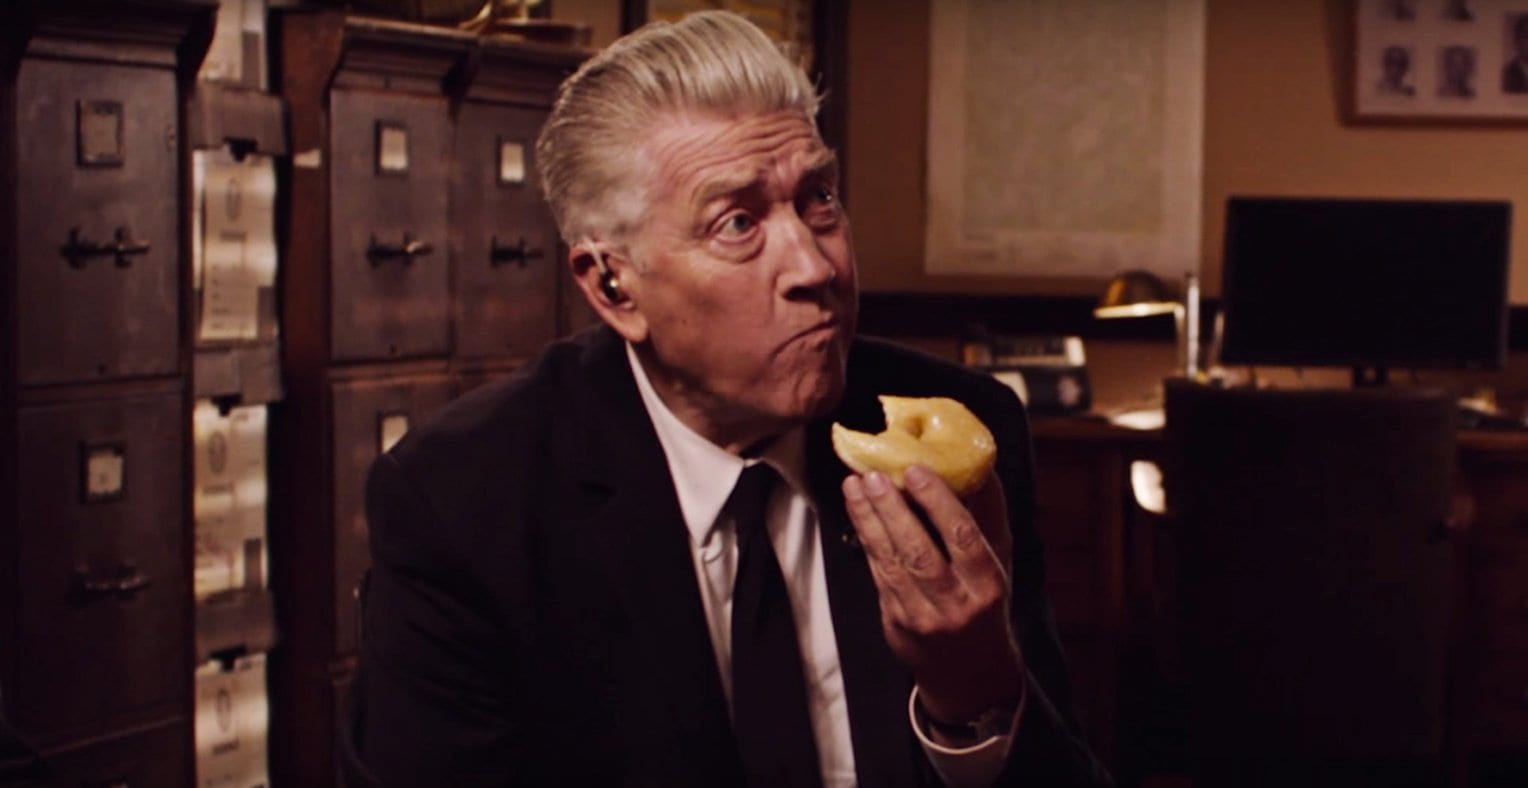 David Lynch as Gordon Cole eats a donut